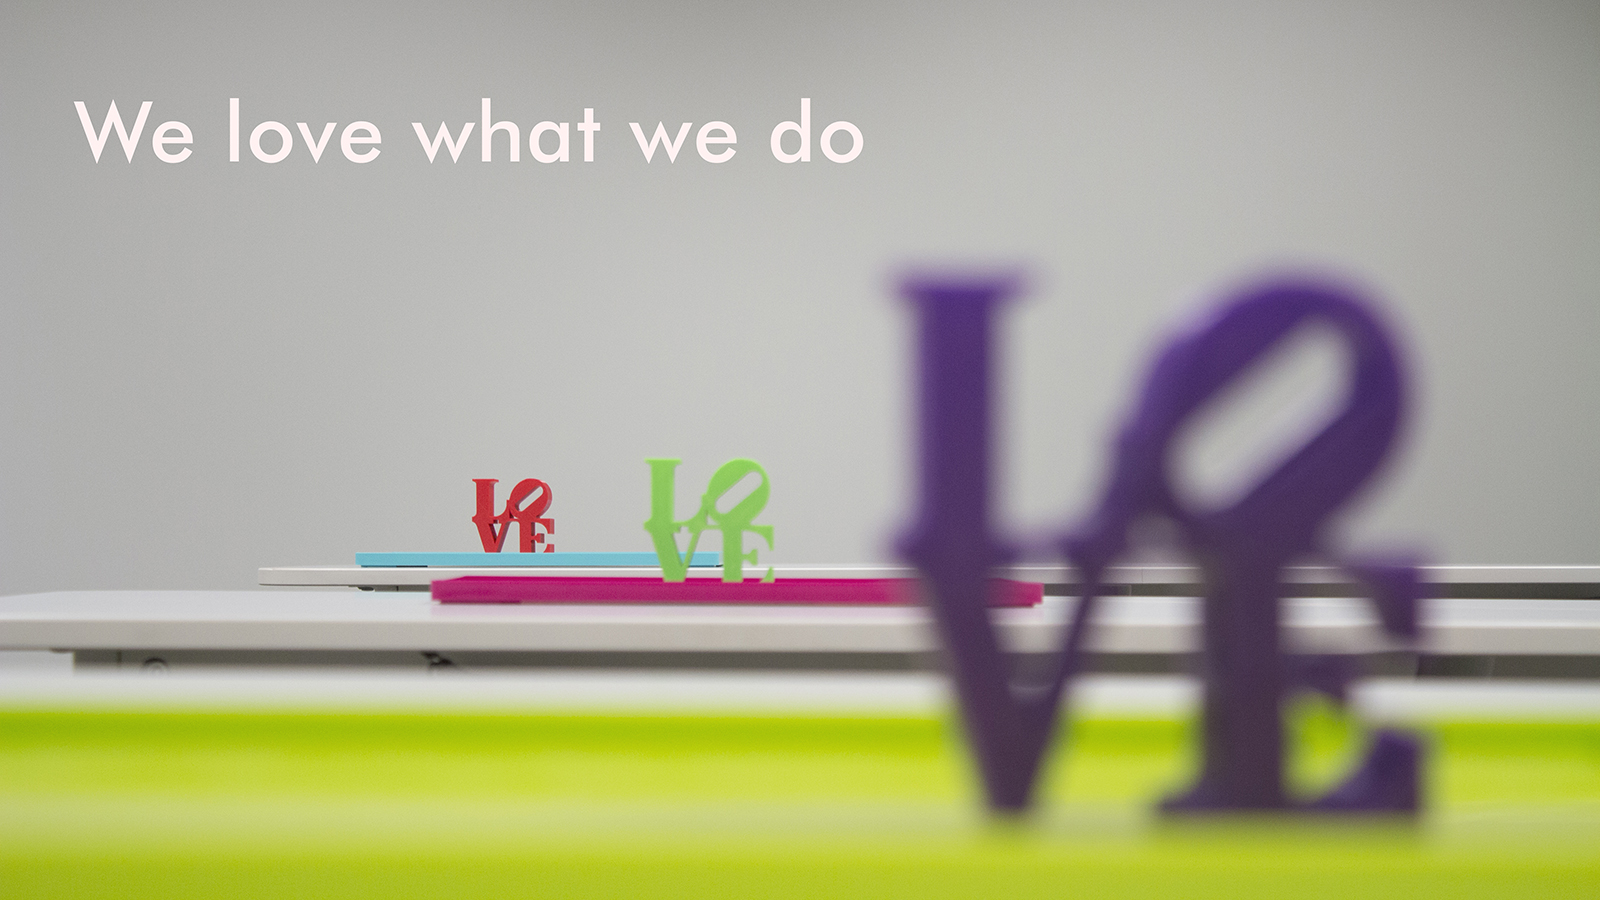 Header Image. We love what we do